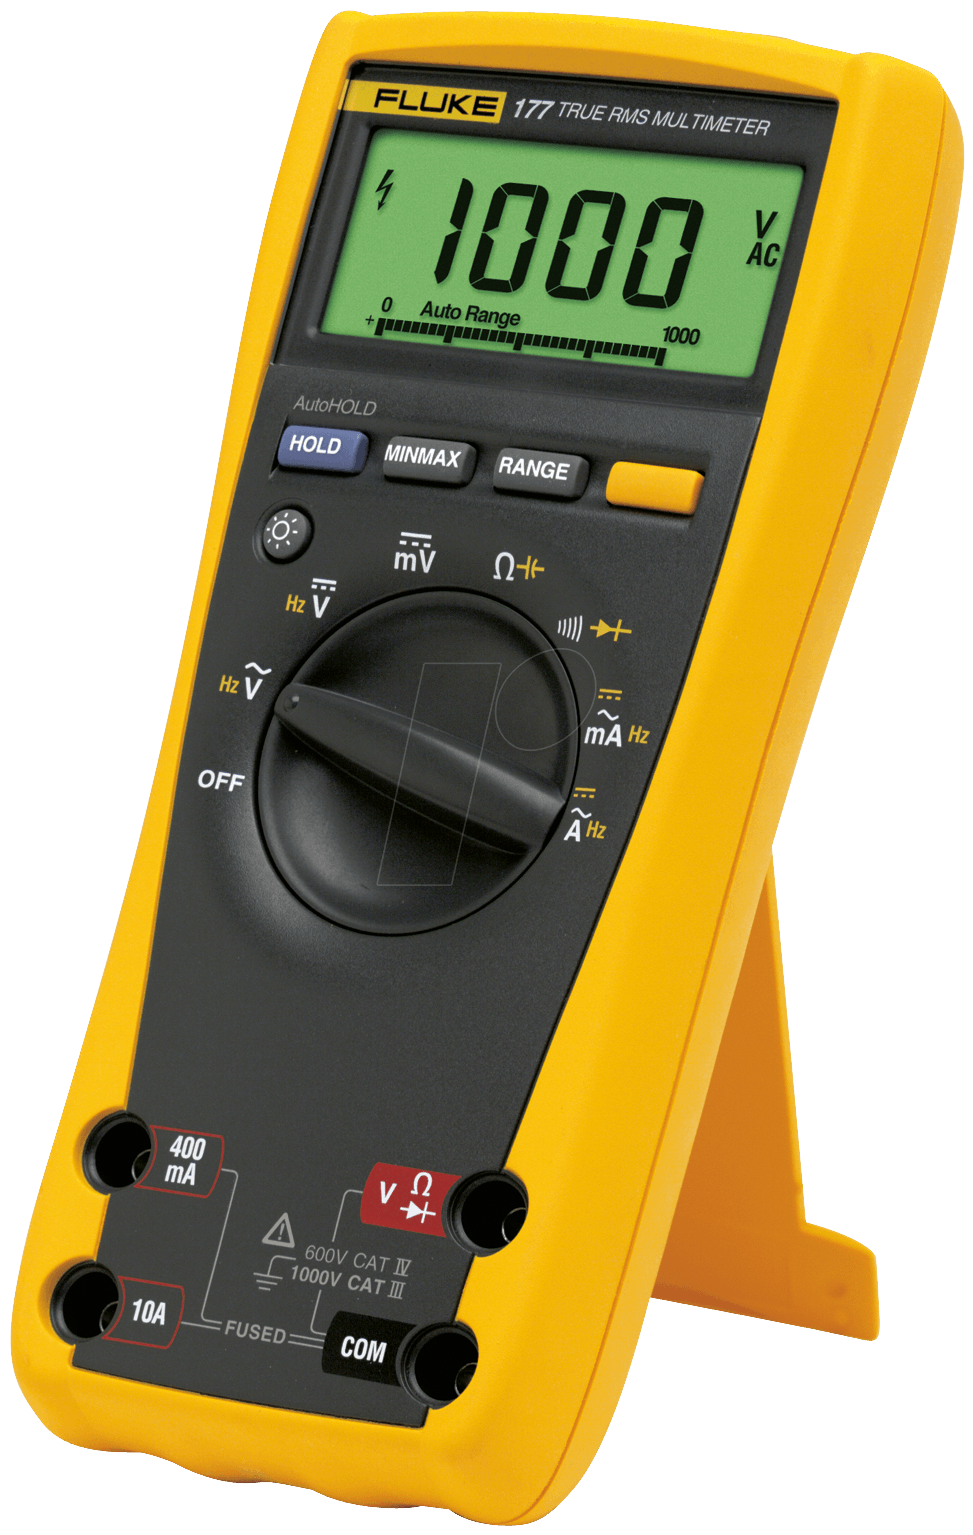 FLUKE 177 - Fluke 177 Universal digital multimeter